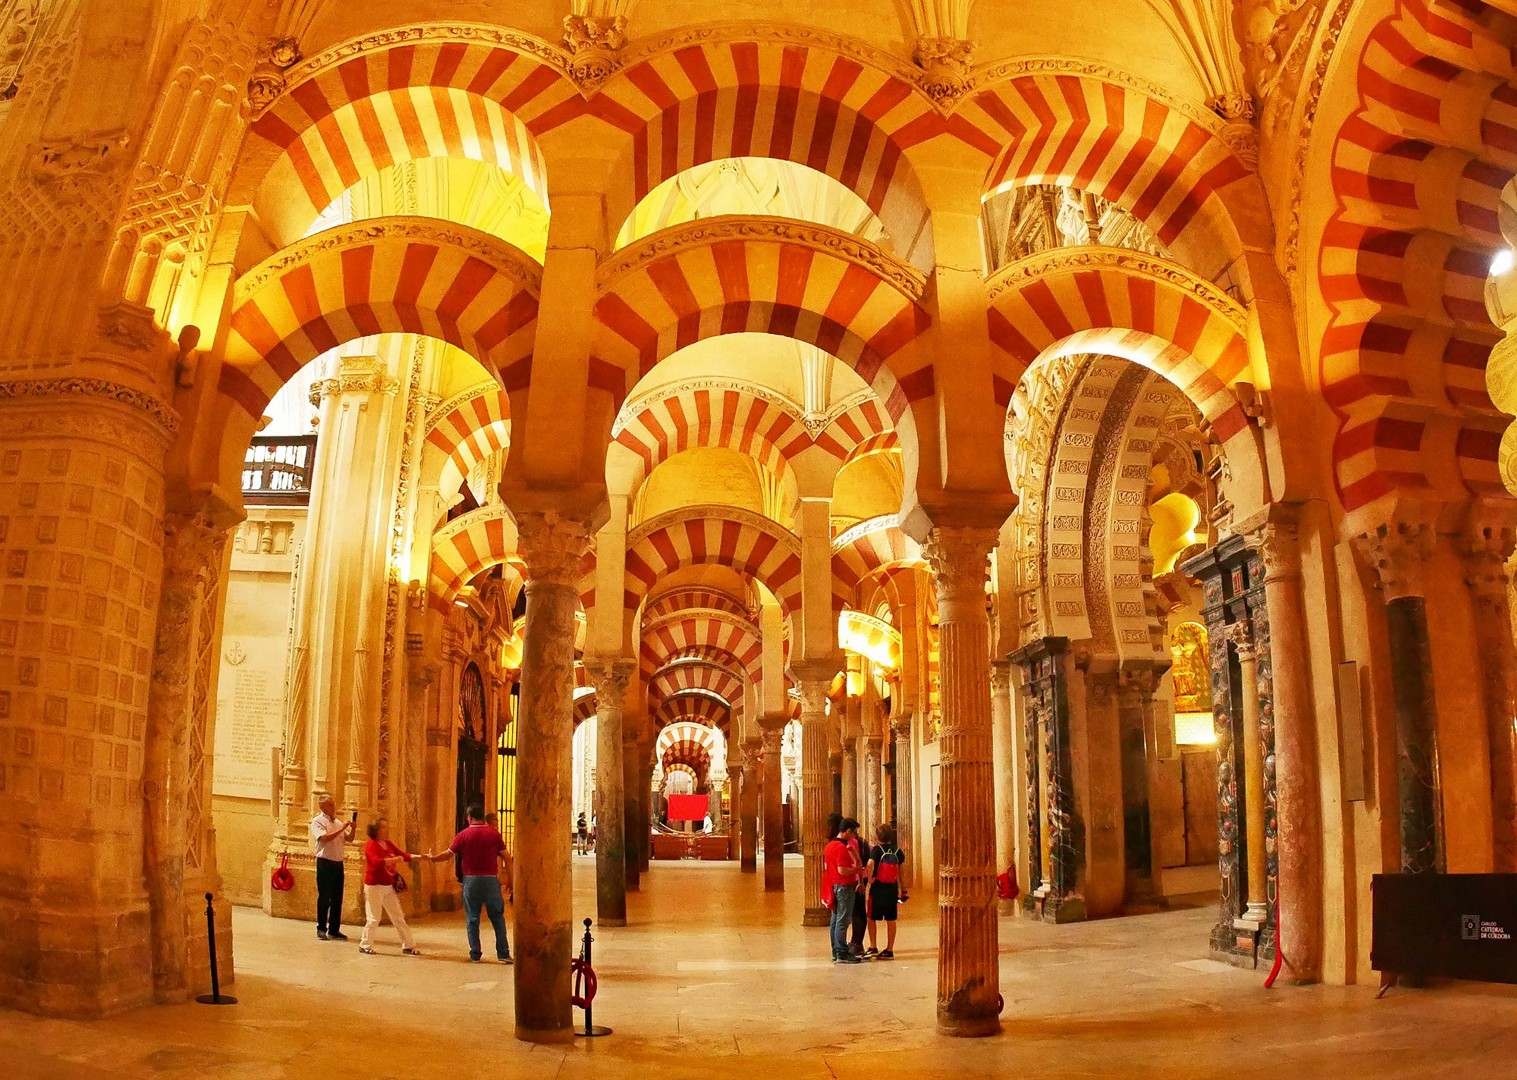 mezquita-guided-leisure-cycling-holiday-southern-spain-granada-to-seville.jpg - Spain - Basque Country to Andalucia - North to South - 21 Day - Guided Road Cycling Holiday - Road Cycling